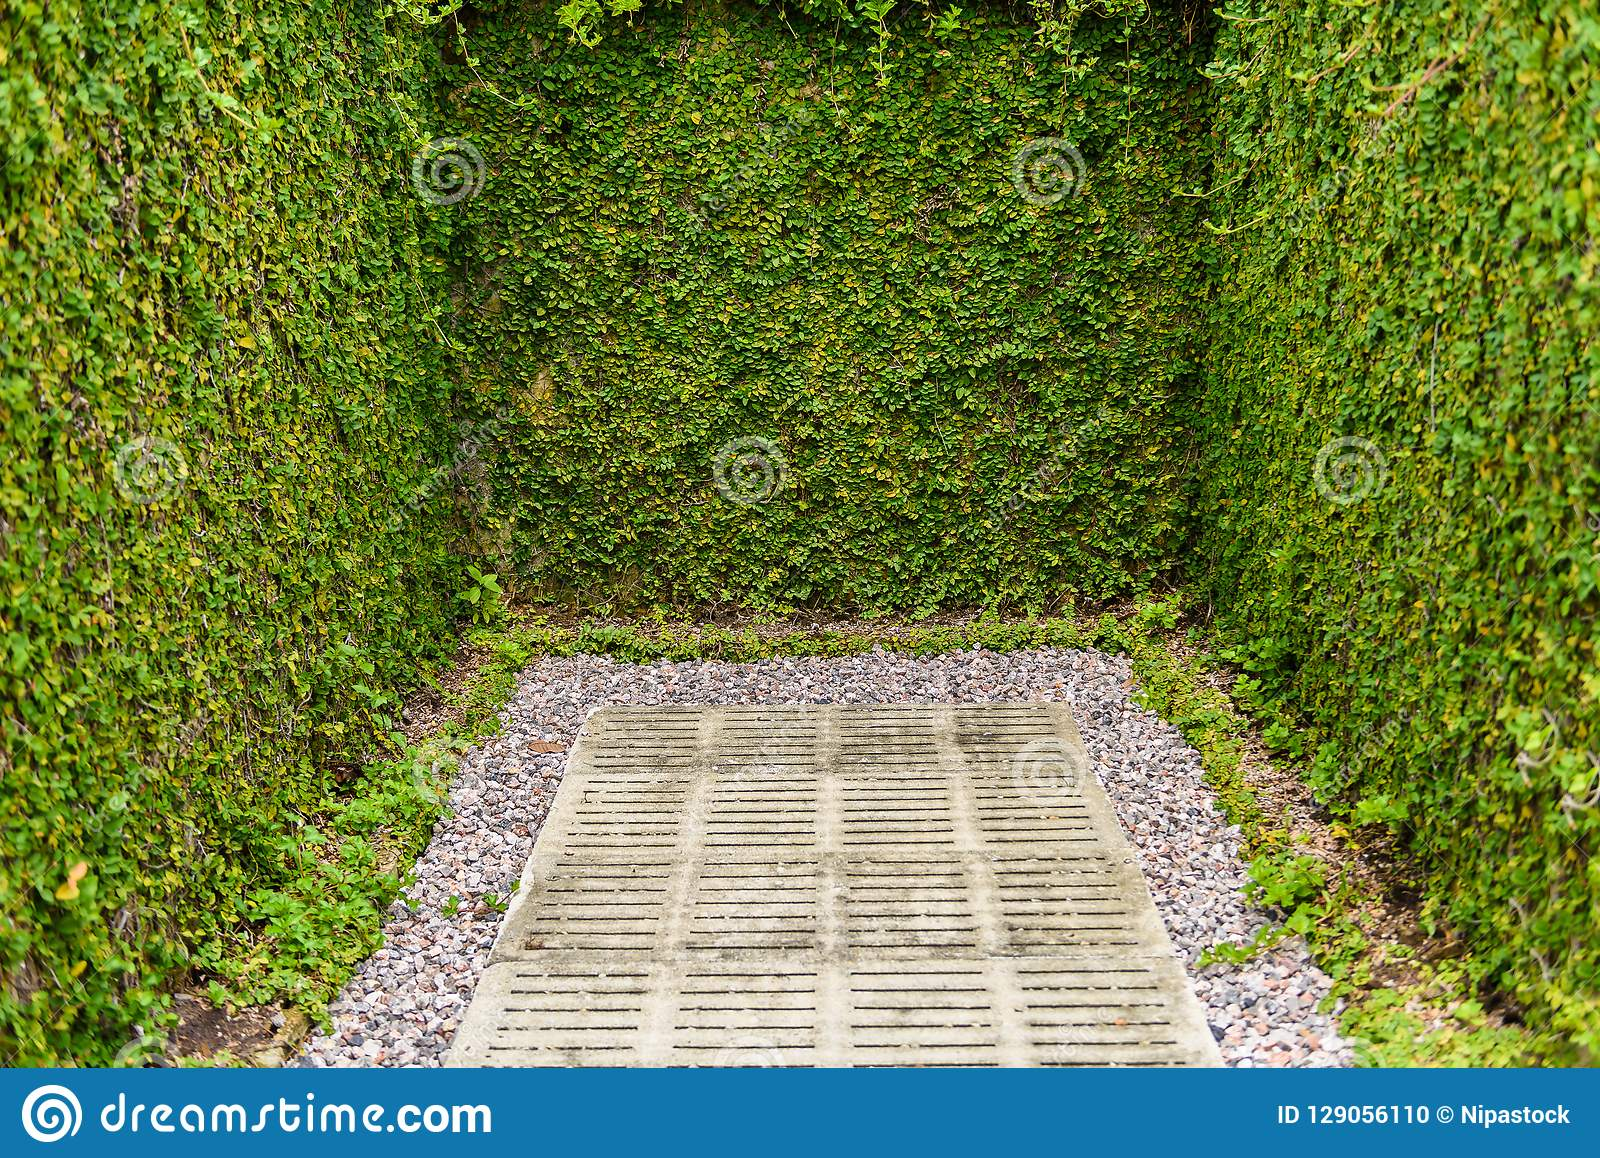 Green Leaves Wall Fence With Concrete Use For Decorative